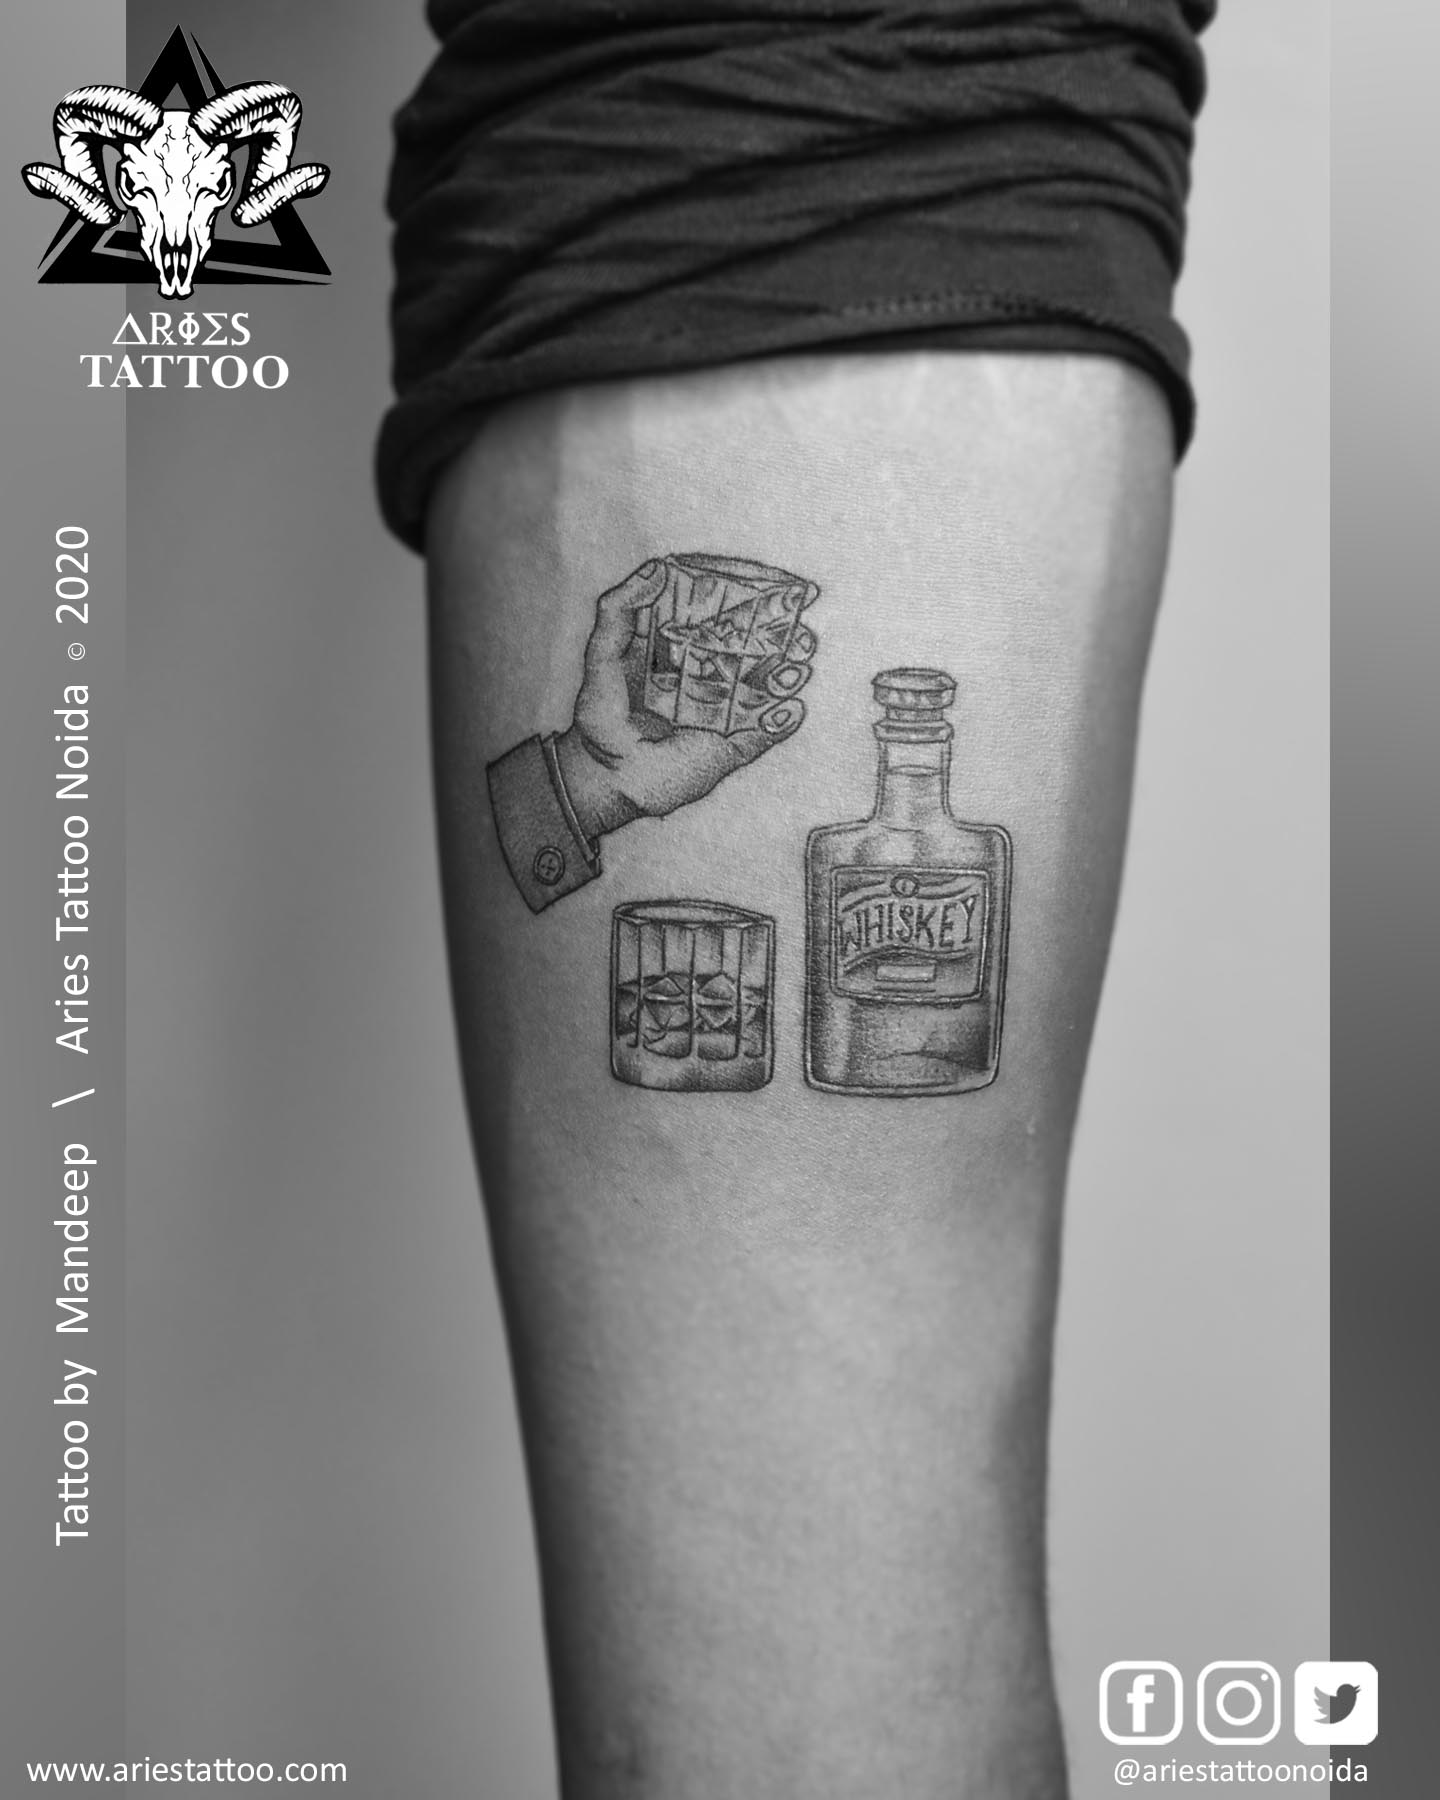 whisky tattoo_mandeep_ariestattoonoida | |Aries Tattoo Noida | Tattoo Shop and Studio In Noida